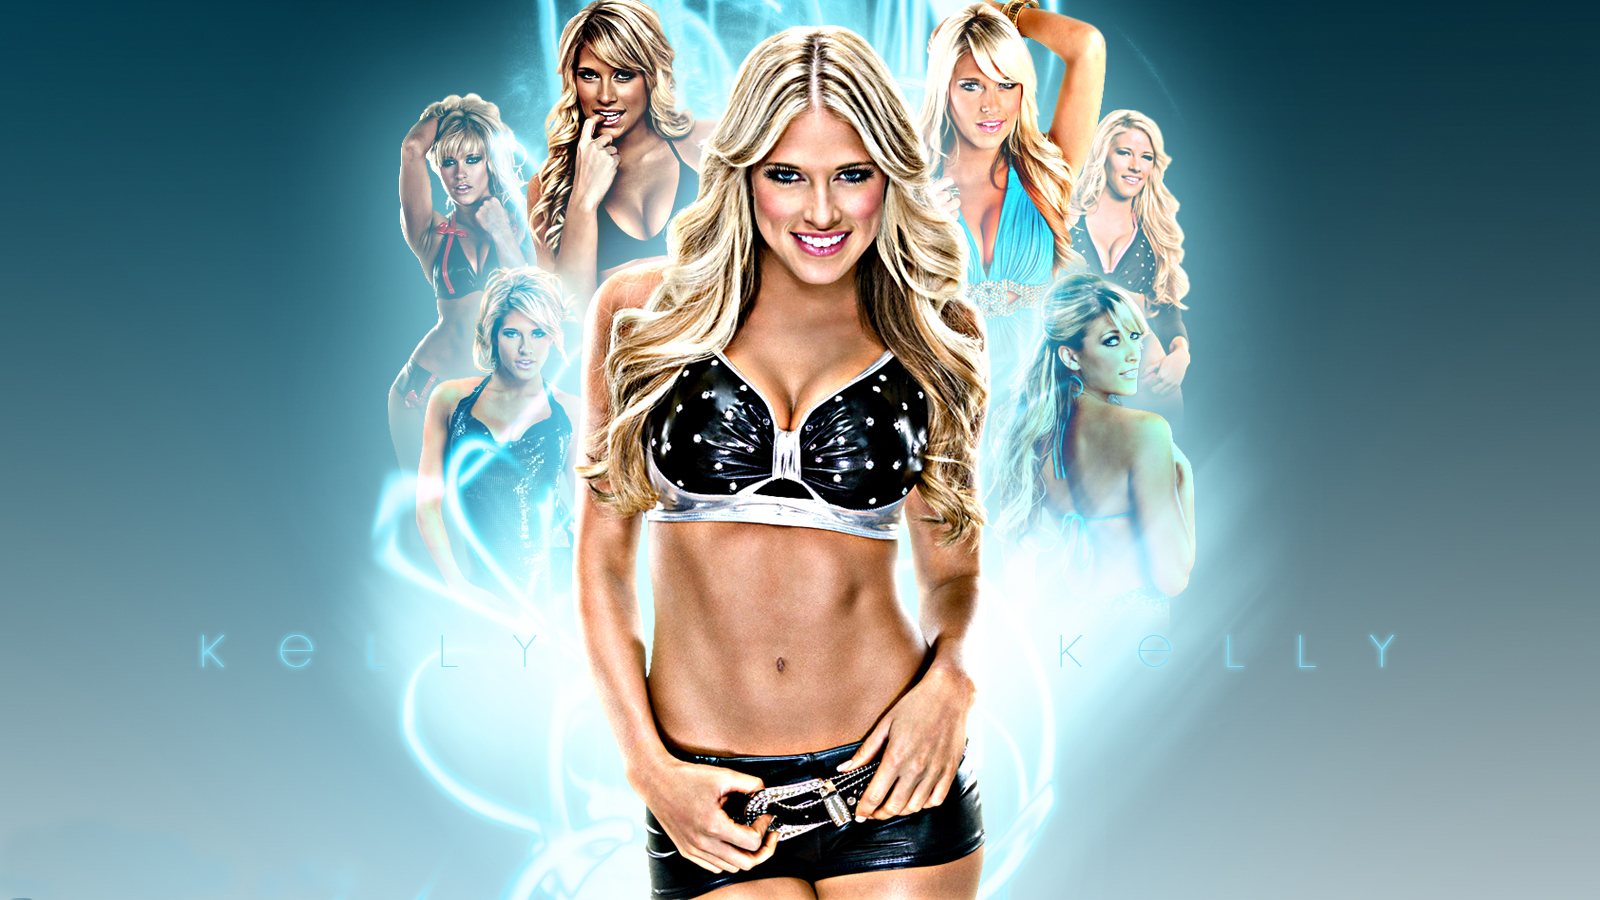 http://2.bp.blogspot.com/-oPxKH5HHUkk/TrkaxvIiDbI/AAAAAAAACGk/ROW9gK_UFbc/s1600/WWE-Kelly-Kelly-HIgh-Quality-Wallpapers.jpg